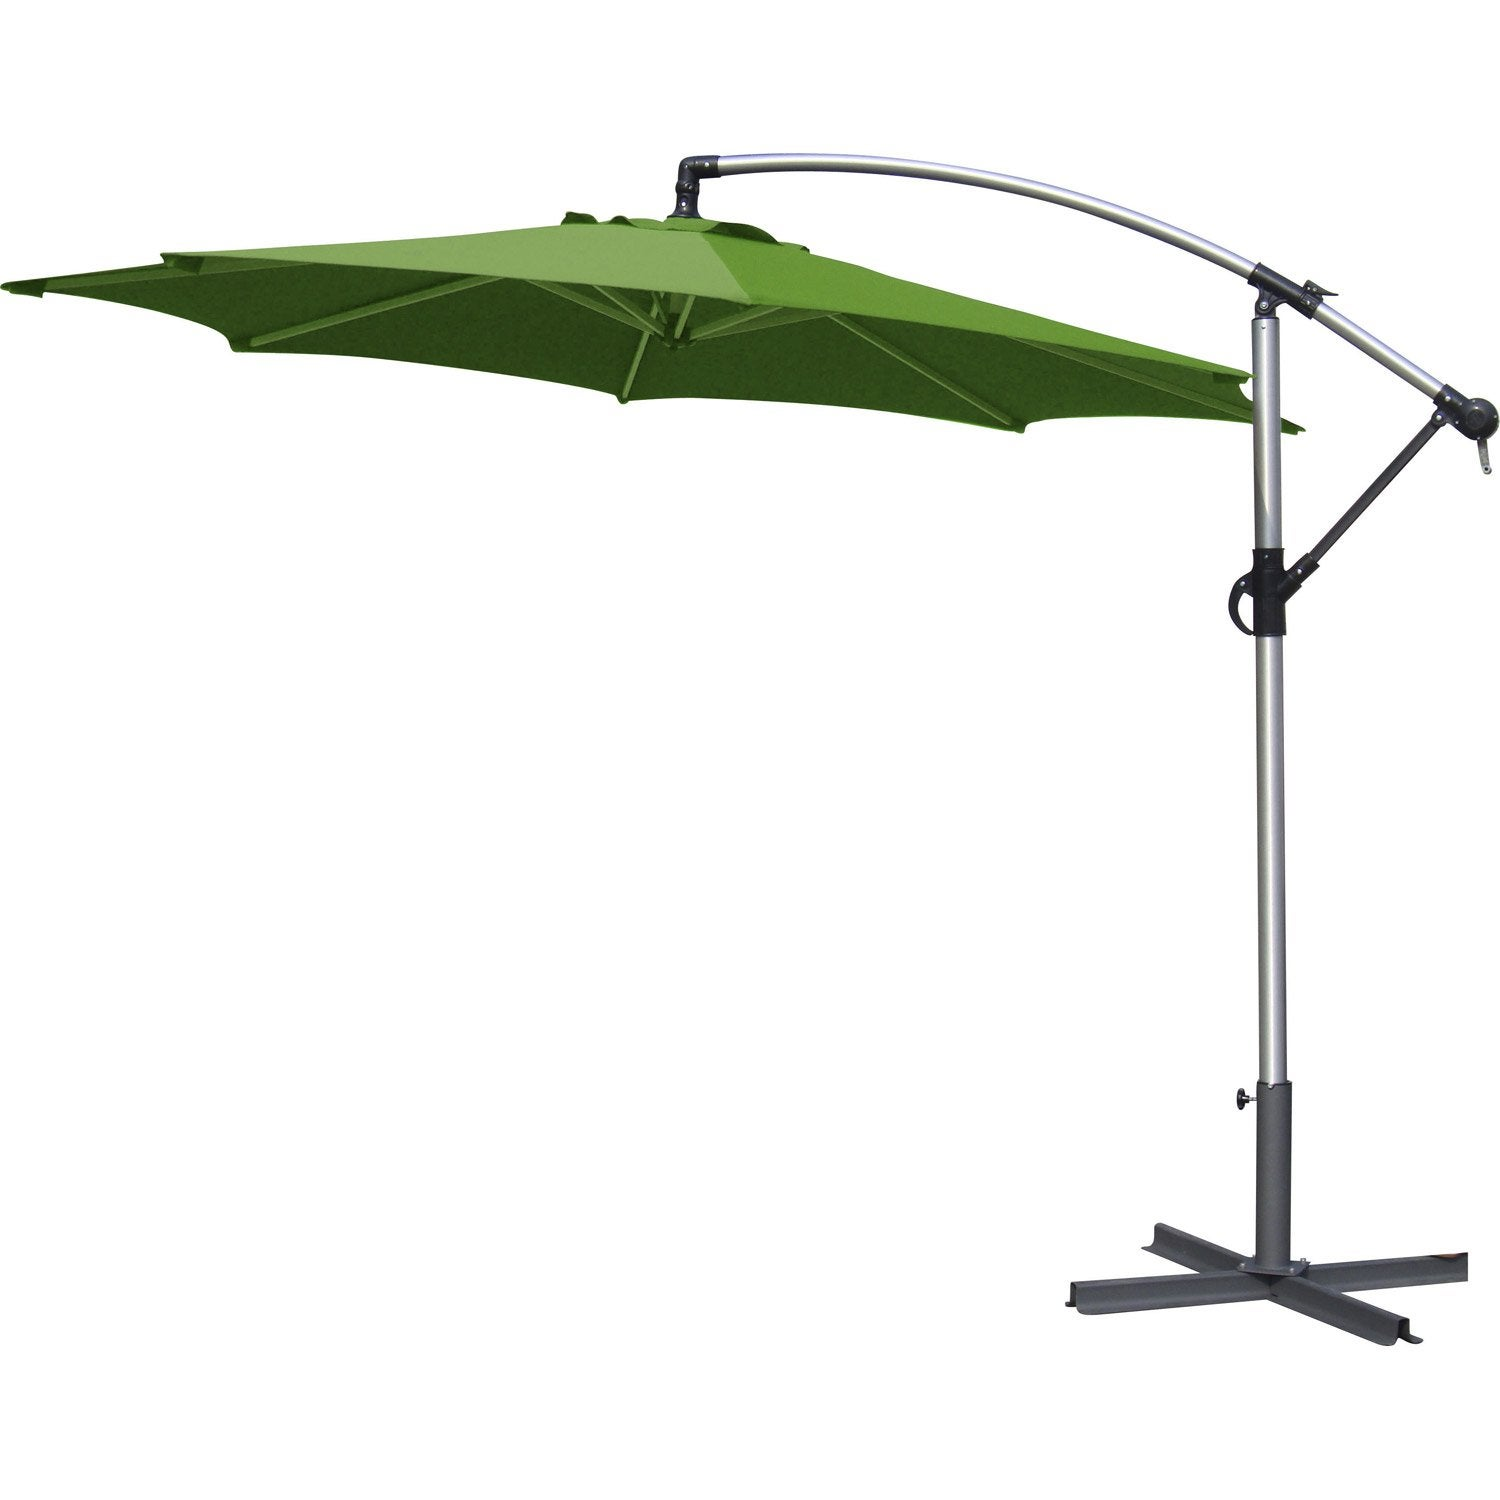 parasol excentr florence naterial vert 7 m leroy merlin. Black Bedroom Furniture Sets. Home Design Ideas